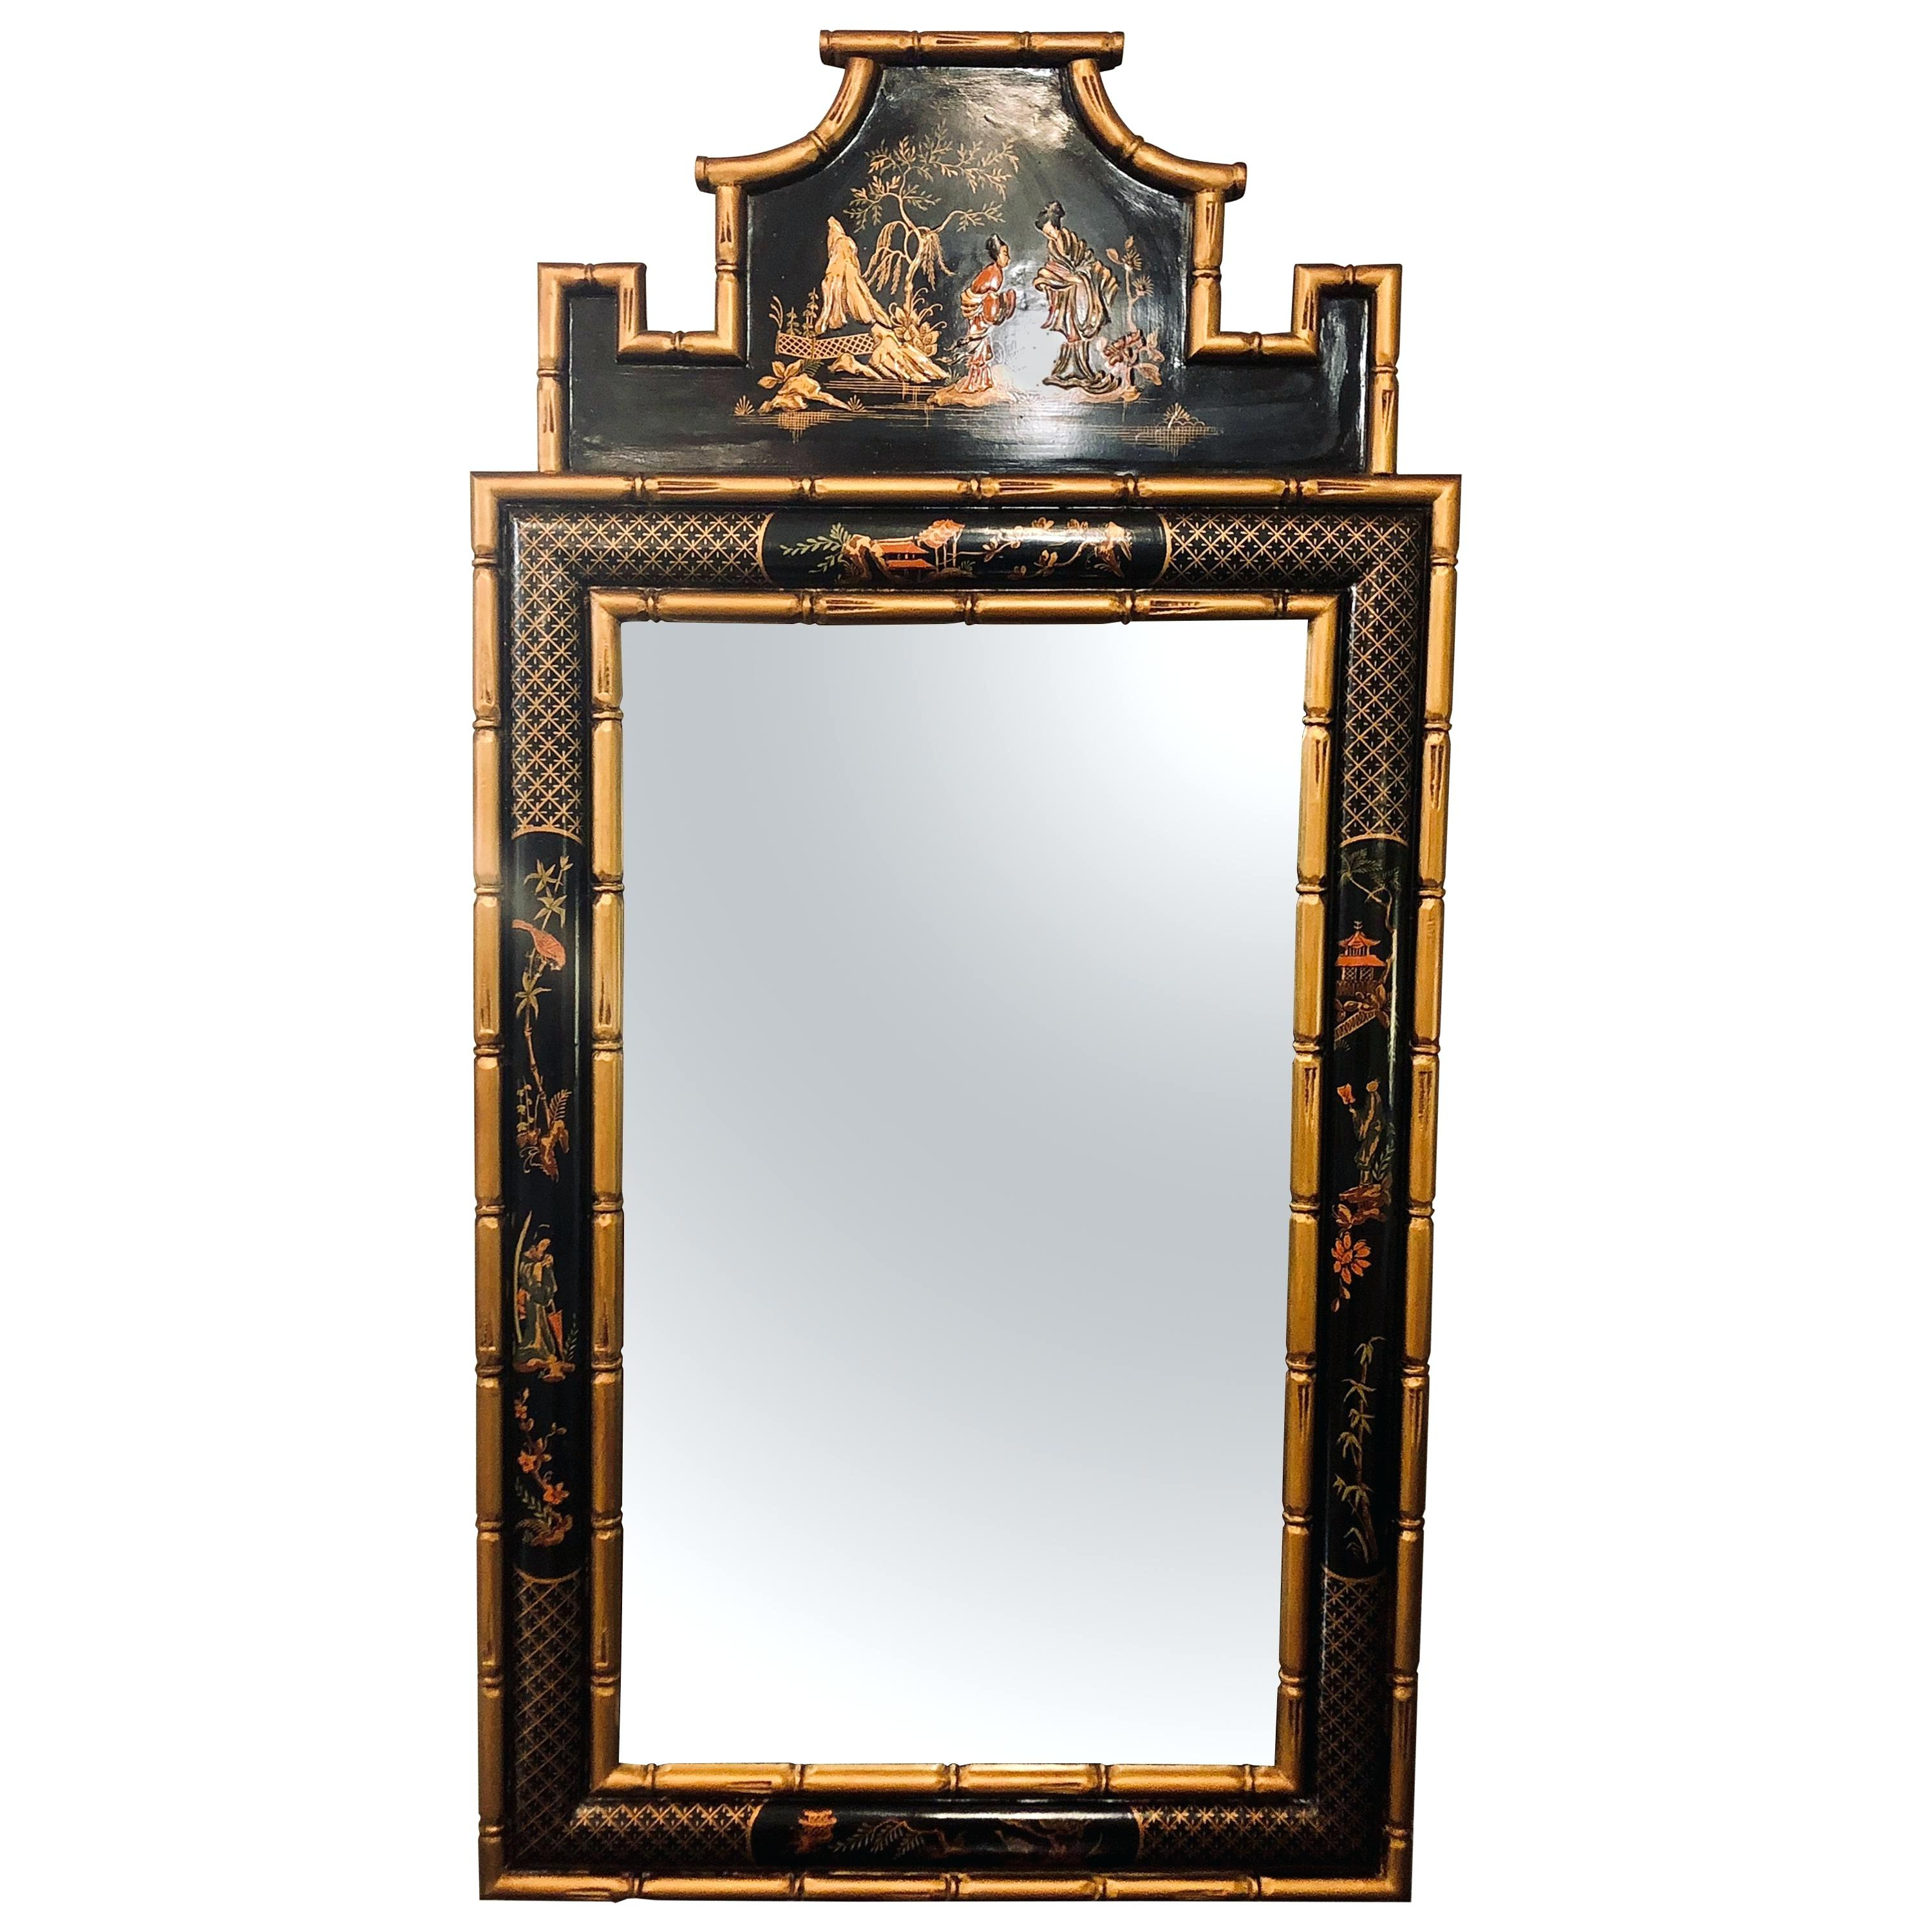 Bamboo Framed Wall Mirrors With Favorite Bamboo Framed Wall Mirrors Frame Mirror Jasmine Faux Bathroom Mirro (View 3 of 20)